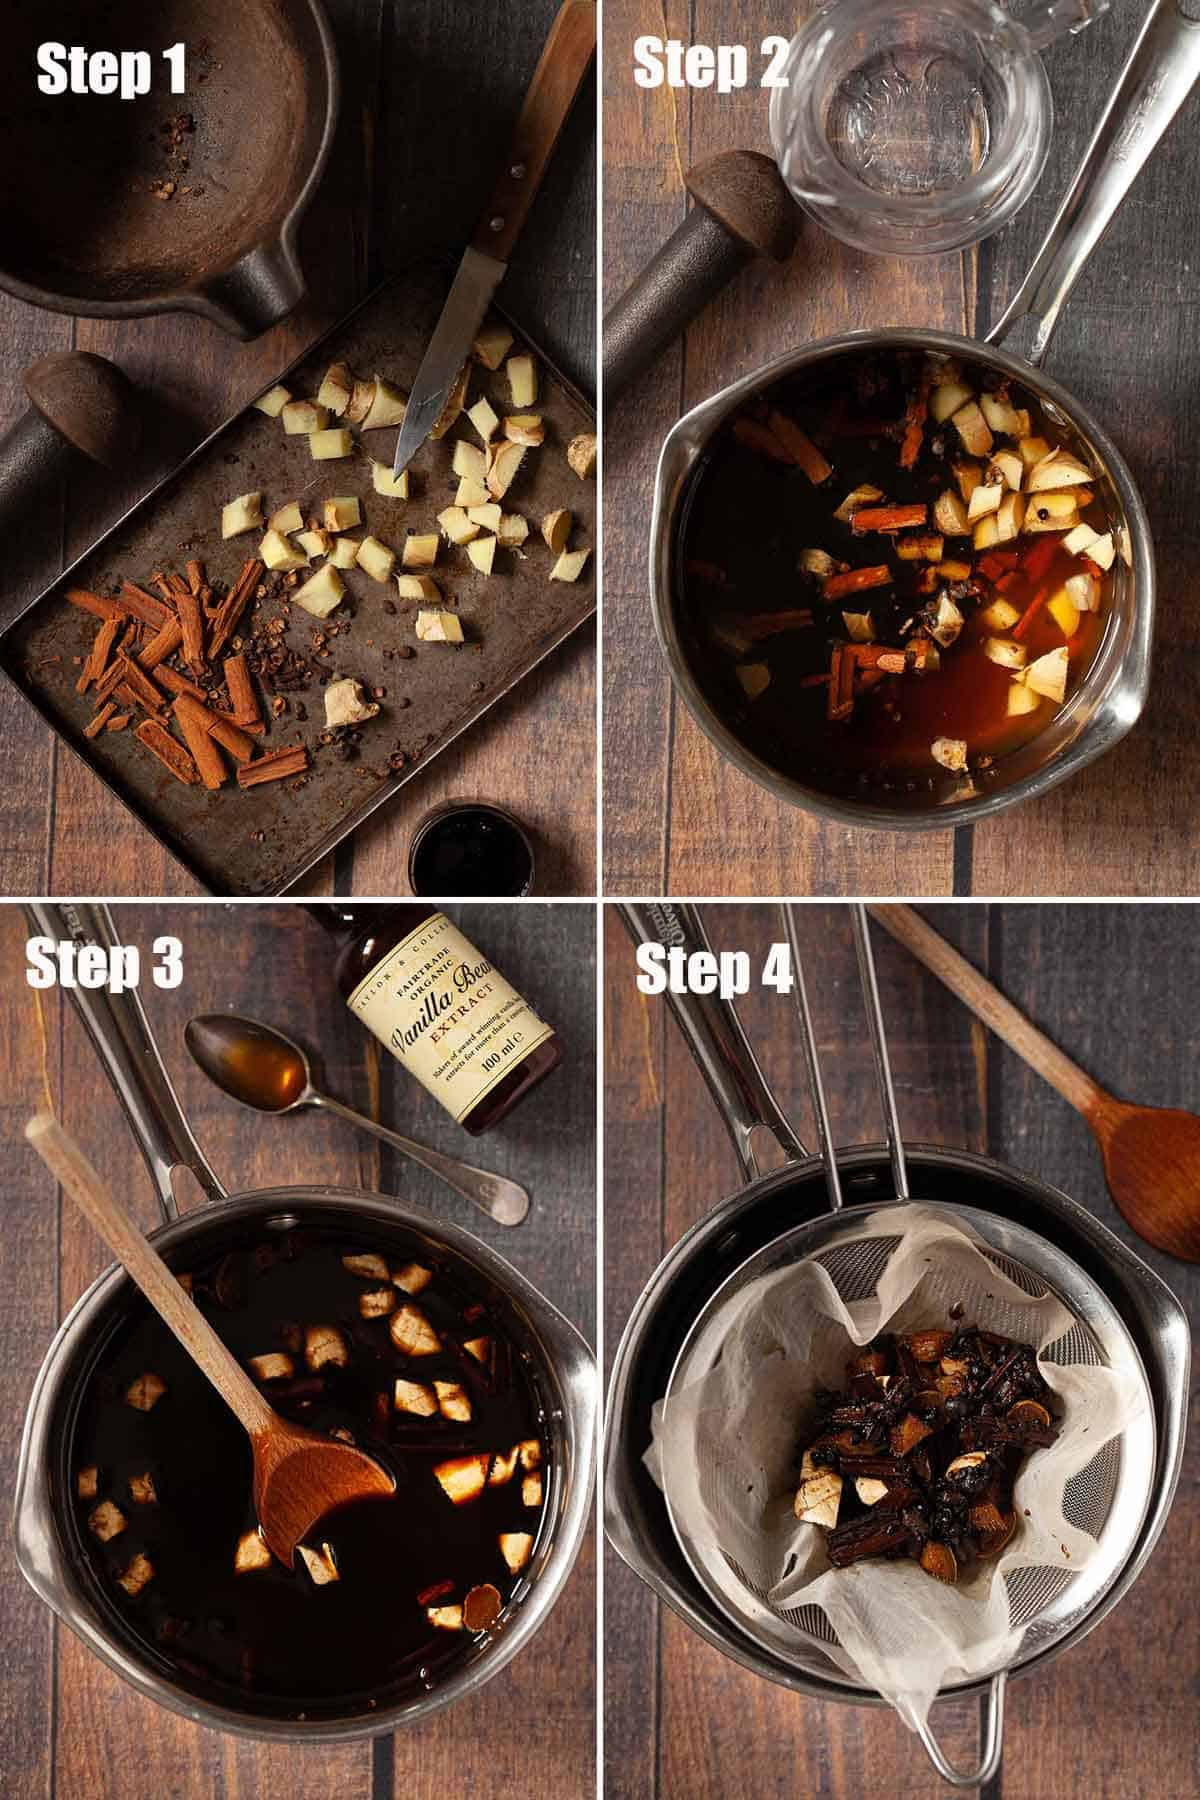 Collage of images showing a gingerbread simple syrup being made.